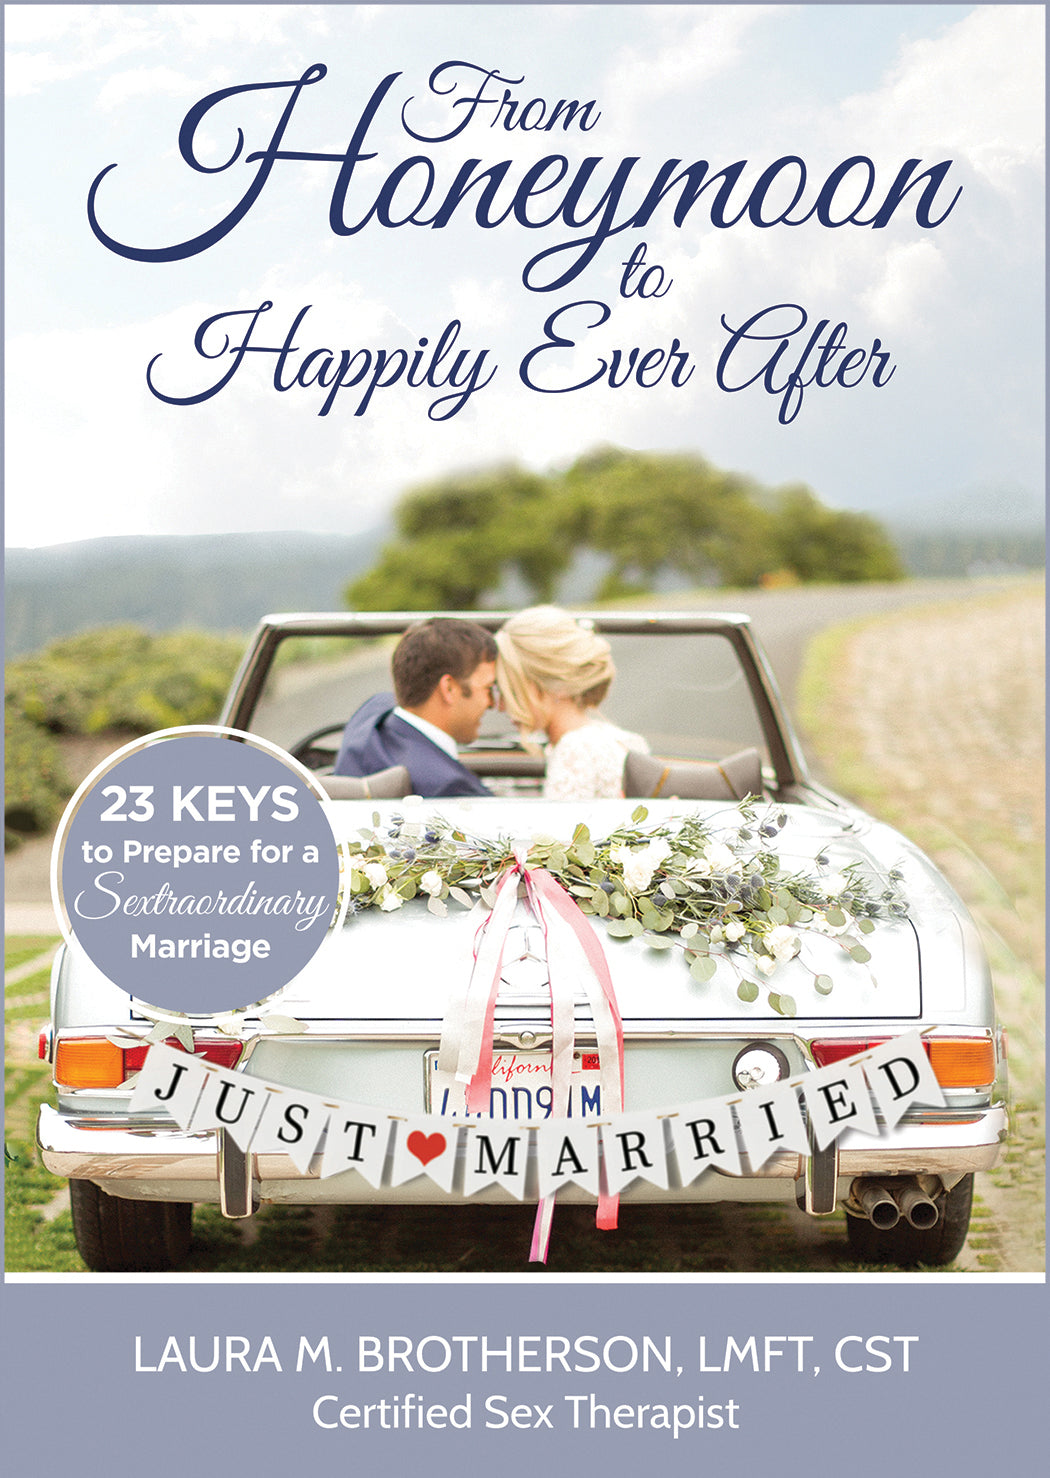 FROM HONEYMOON TO HAPPILY EVER AFTER